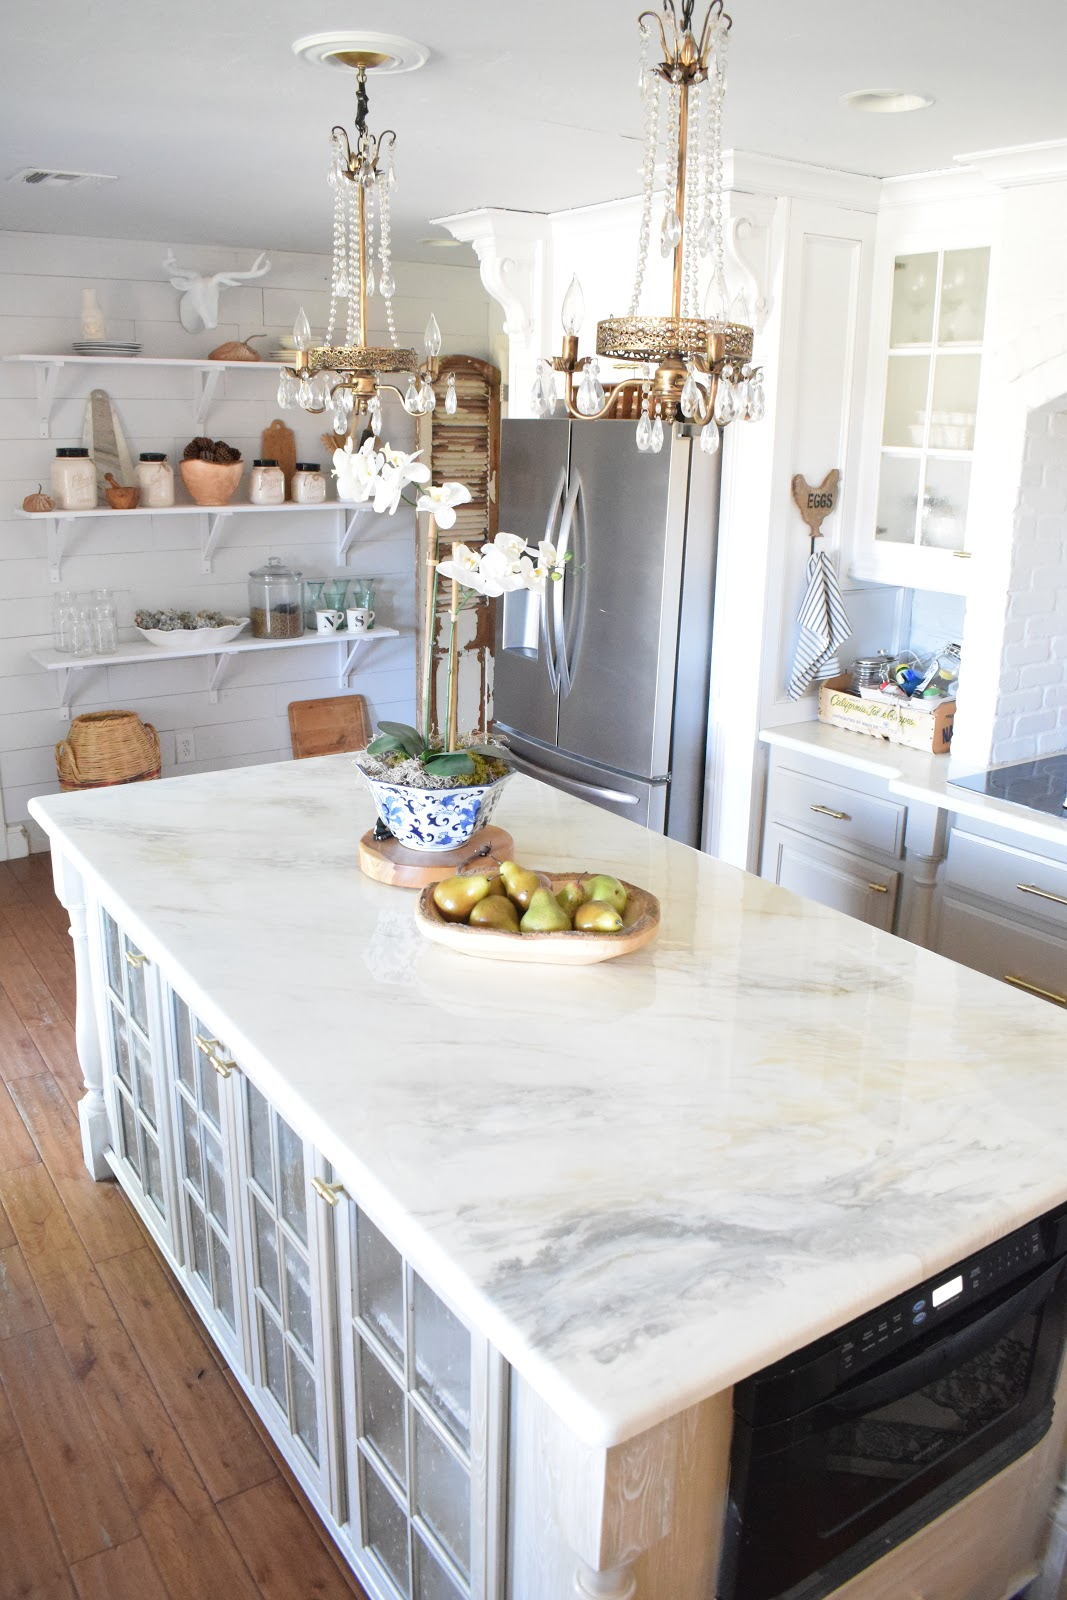 DIY Countertop Paint Kits: 17 DIY Countertops to Update Your Kitchen this Weekend on a Budget